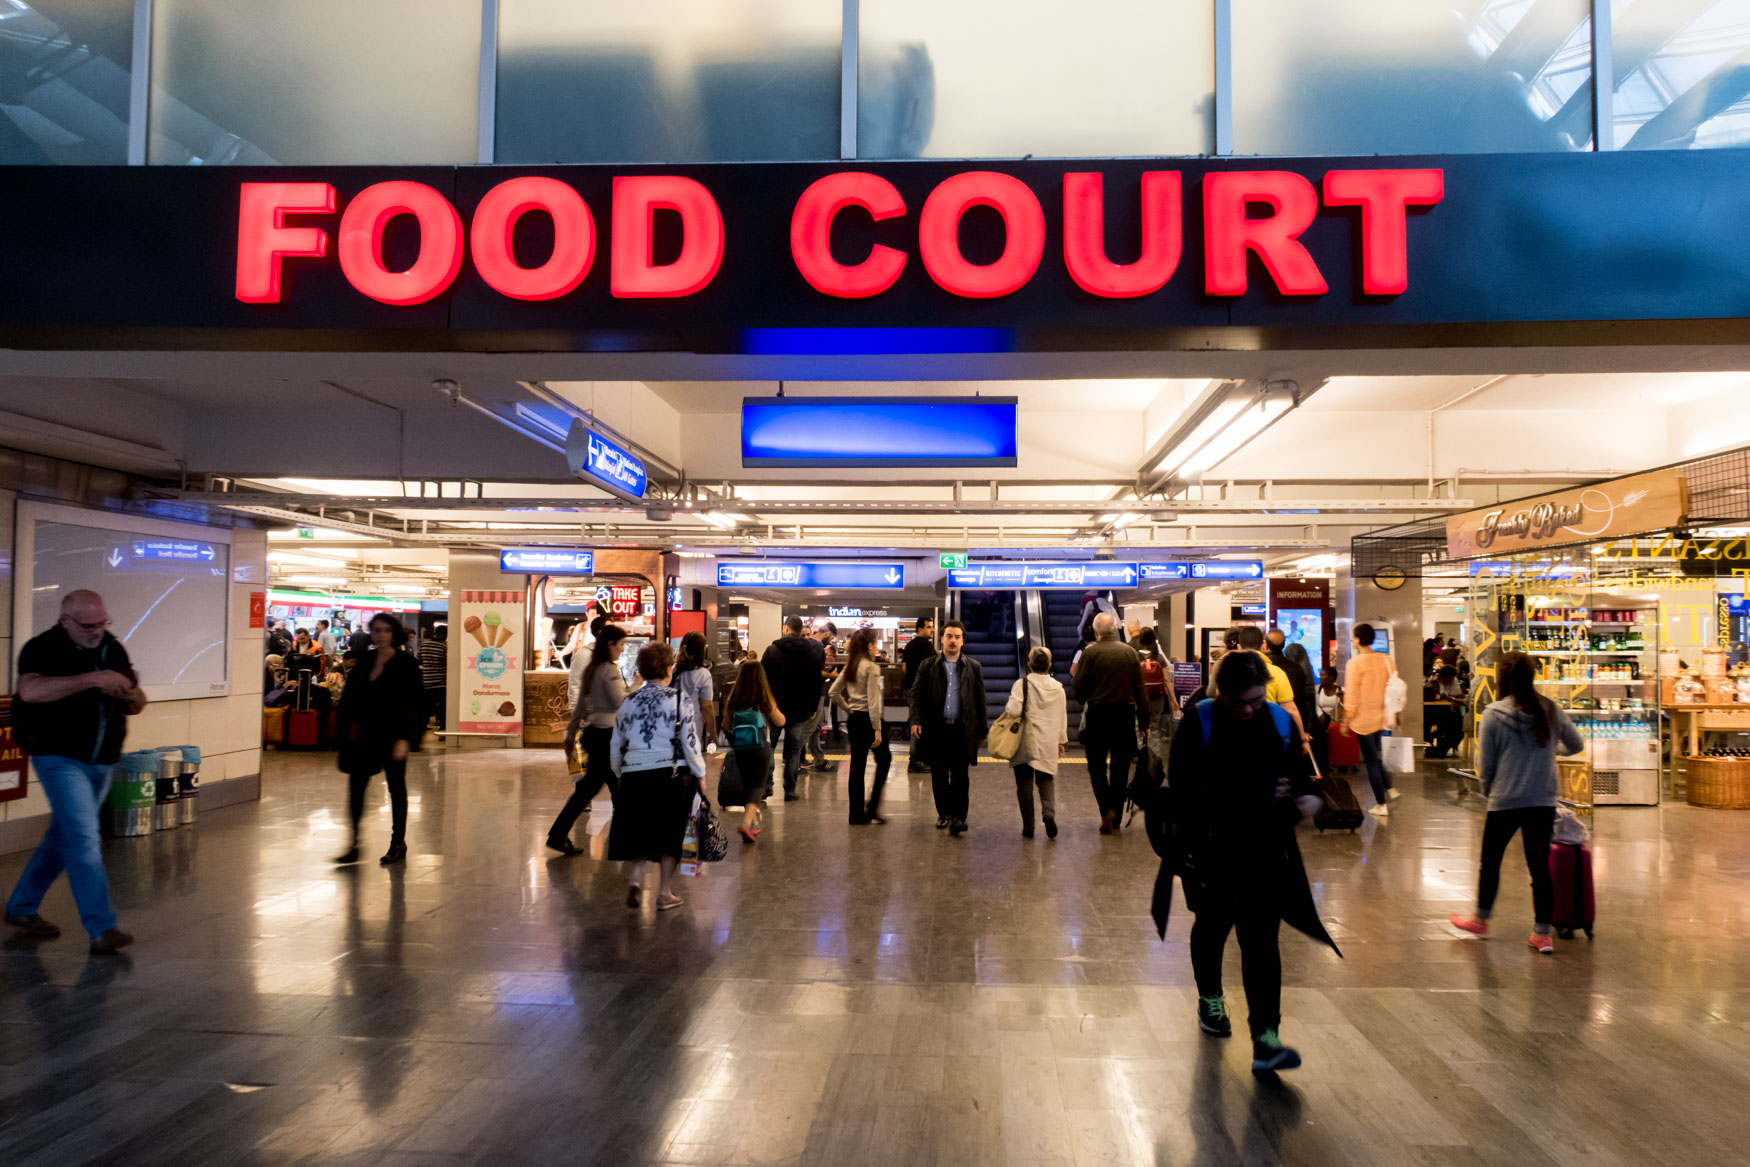 Istanbul Airport Food Court